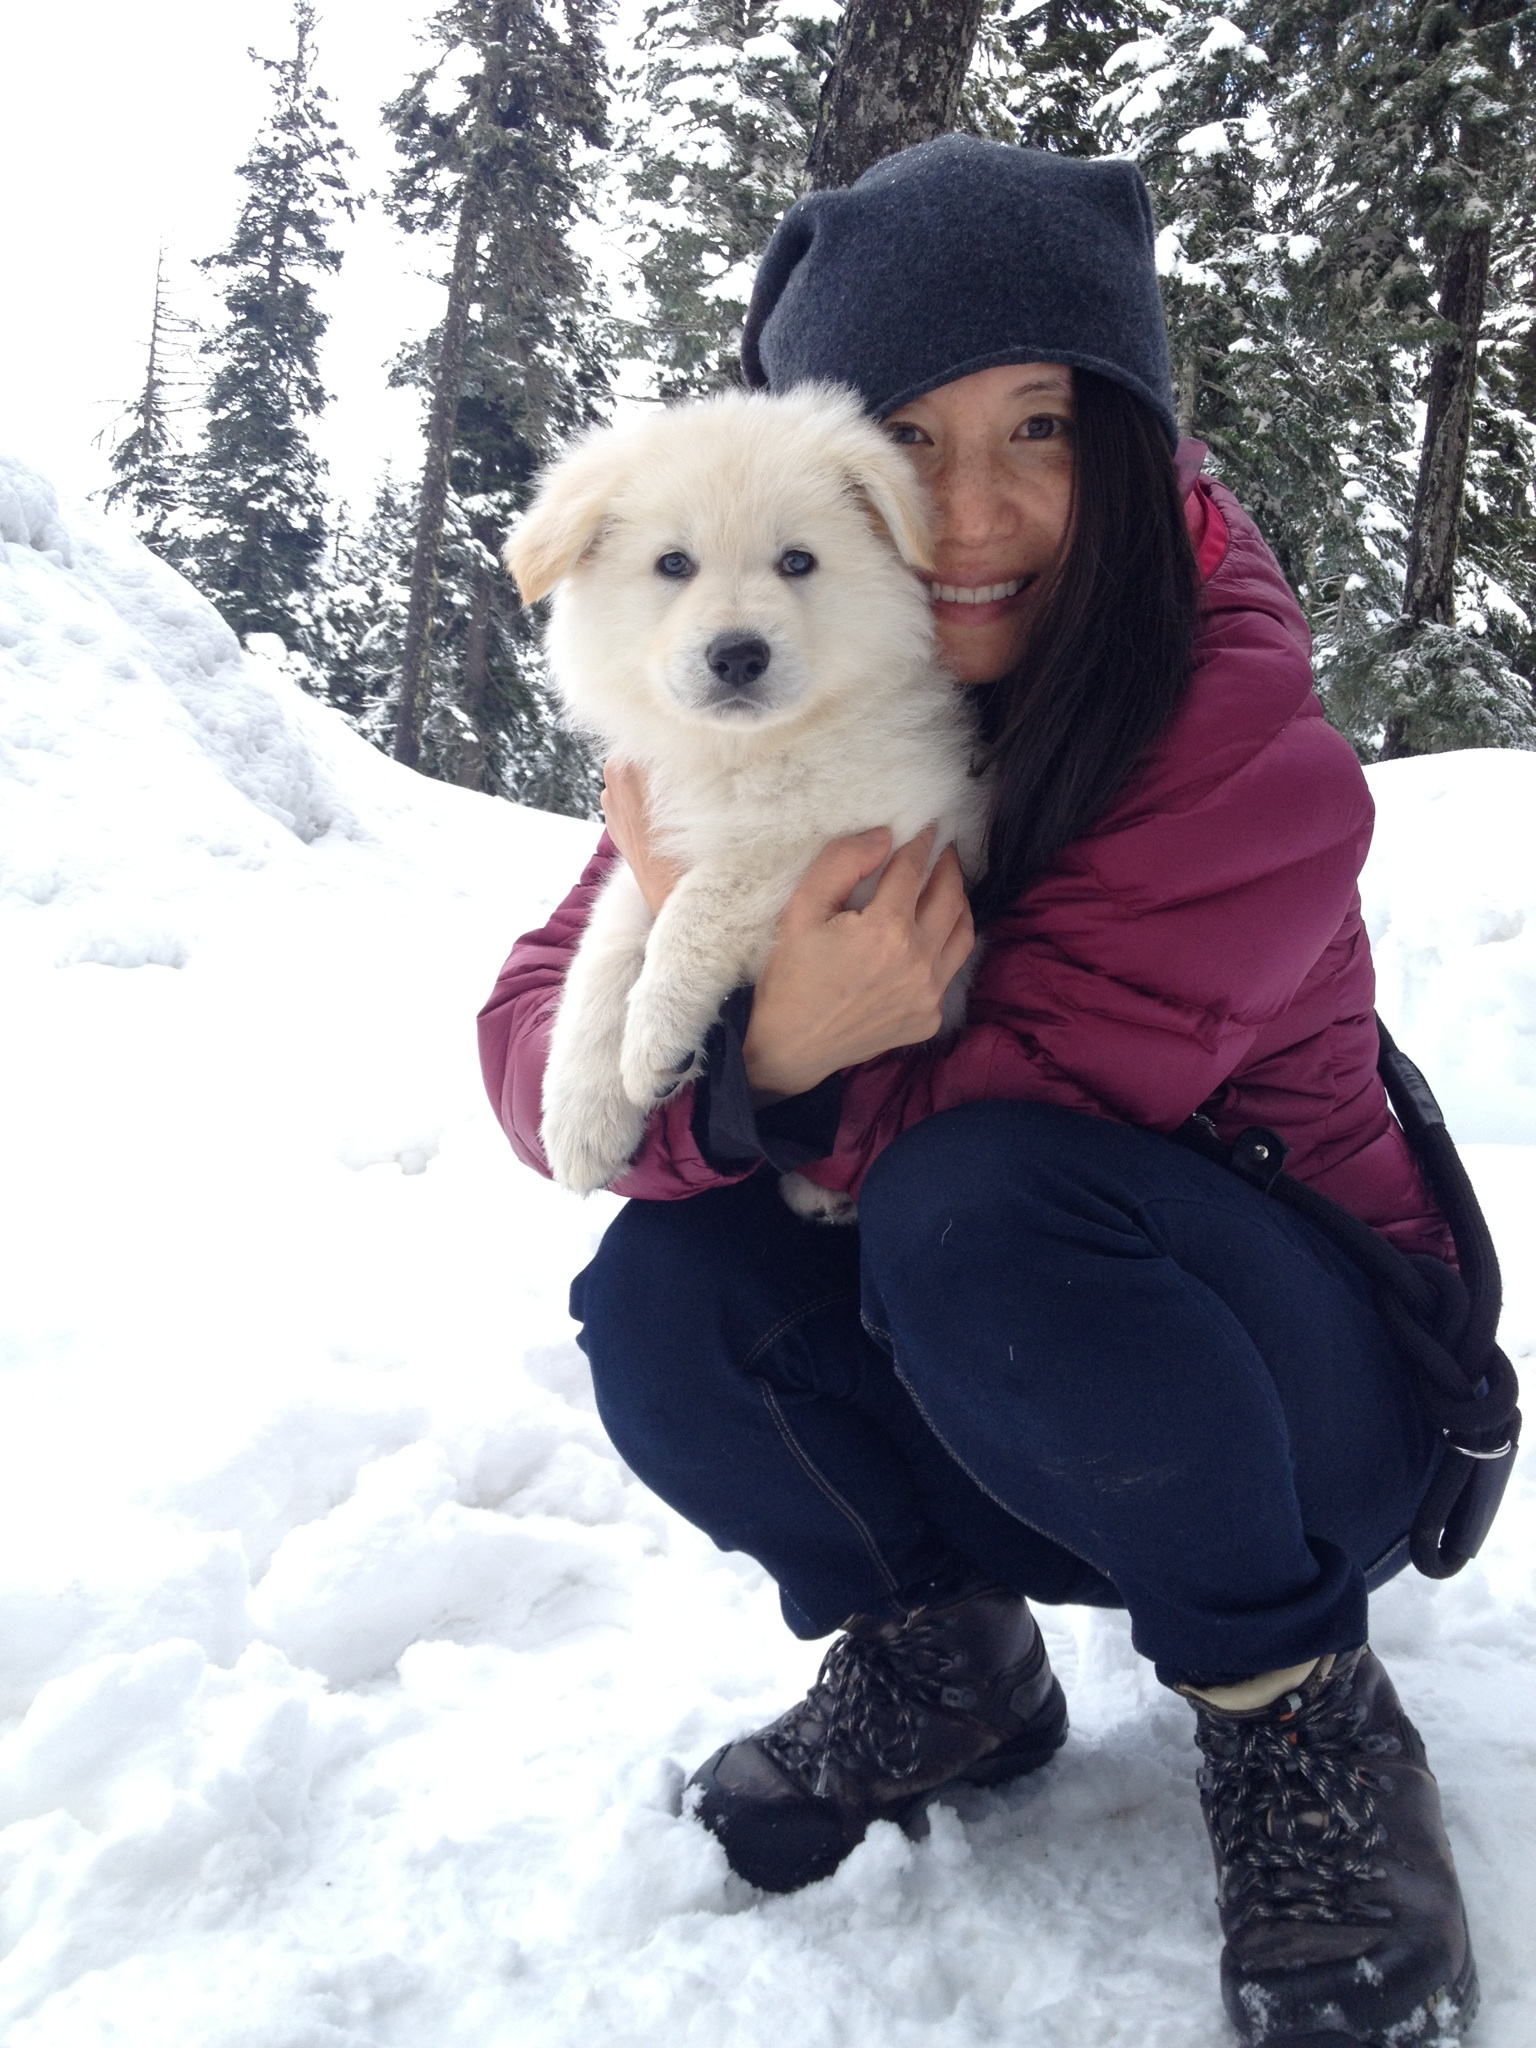 Junga Subedar with Norbu, one of her wolf pack. photo: Edward Subedar